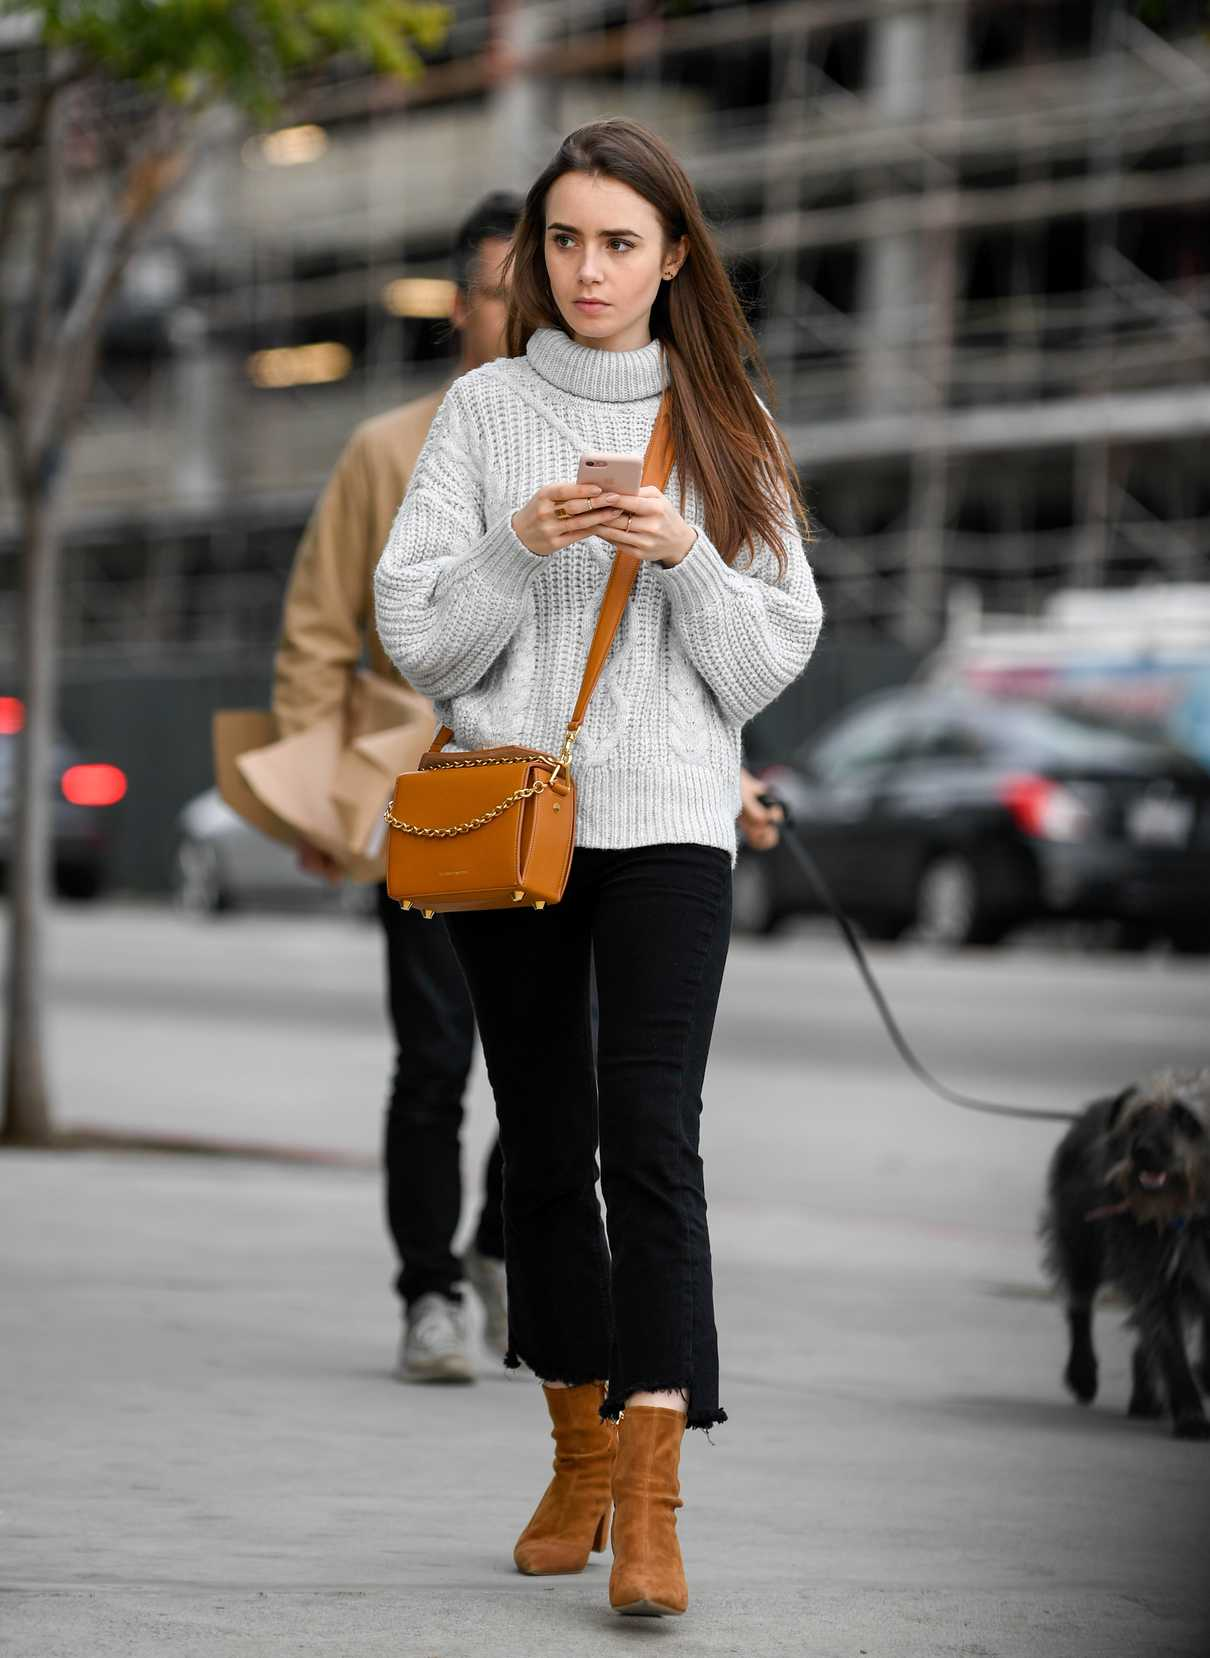 Lily Collins in a Gray Sweater